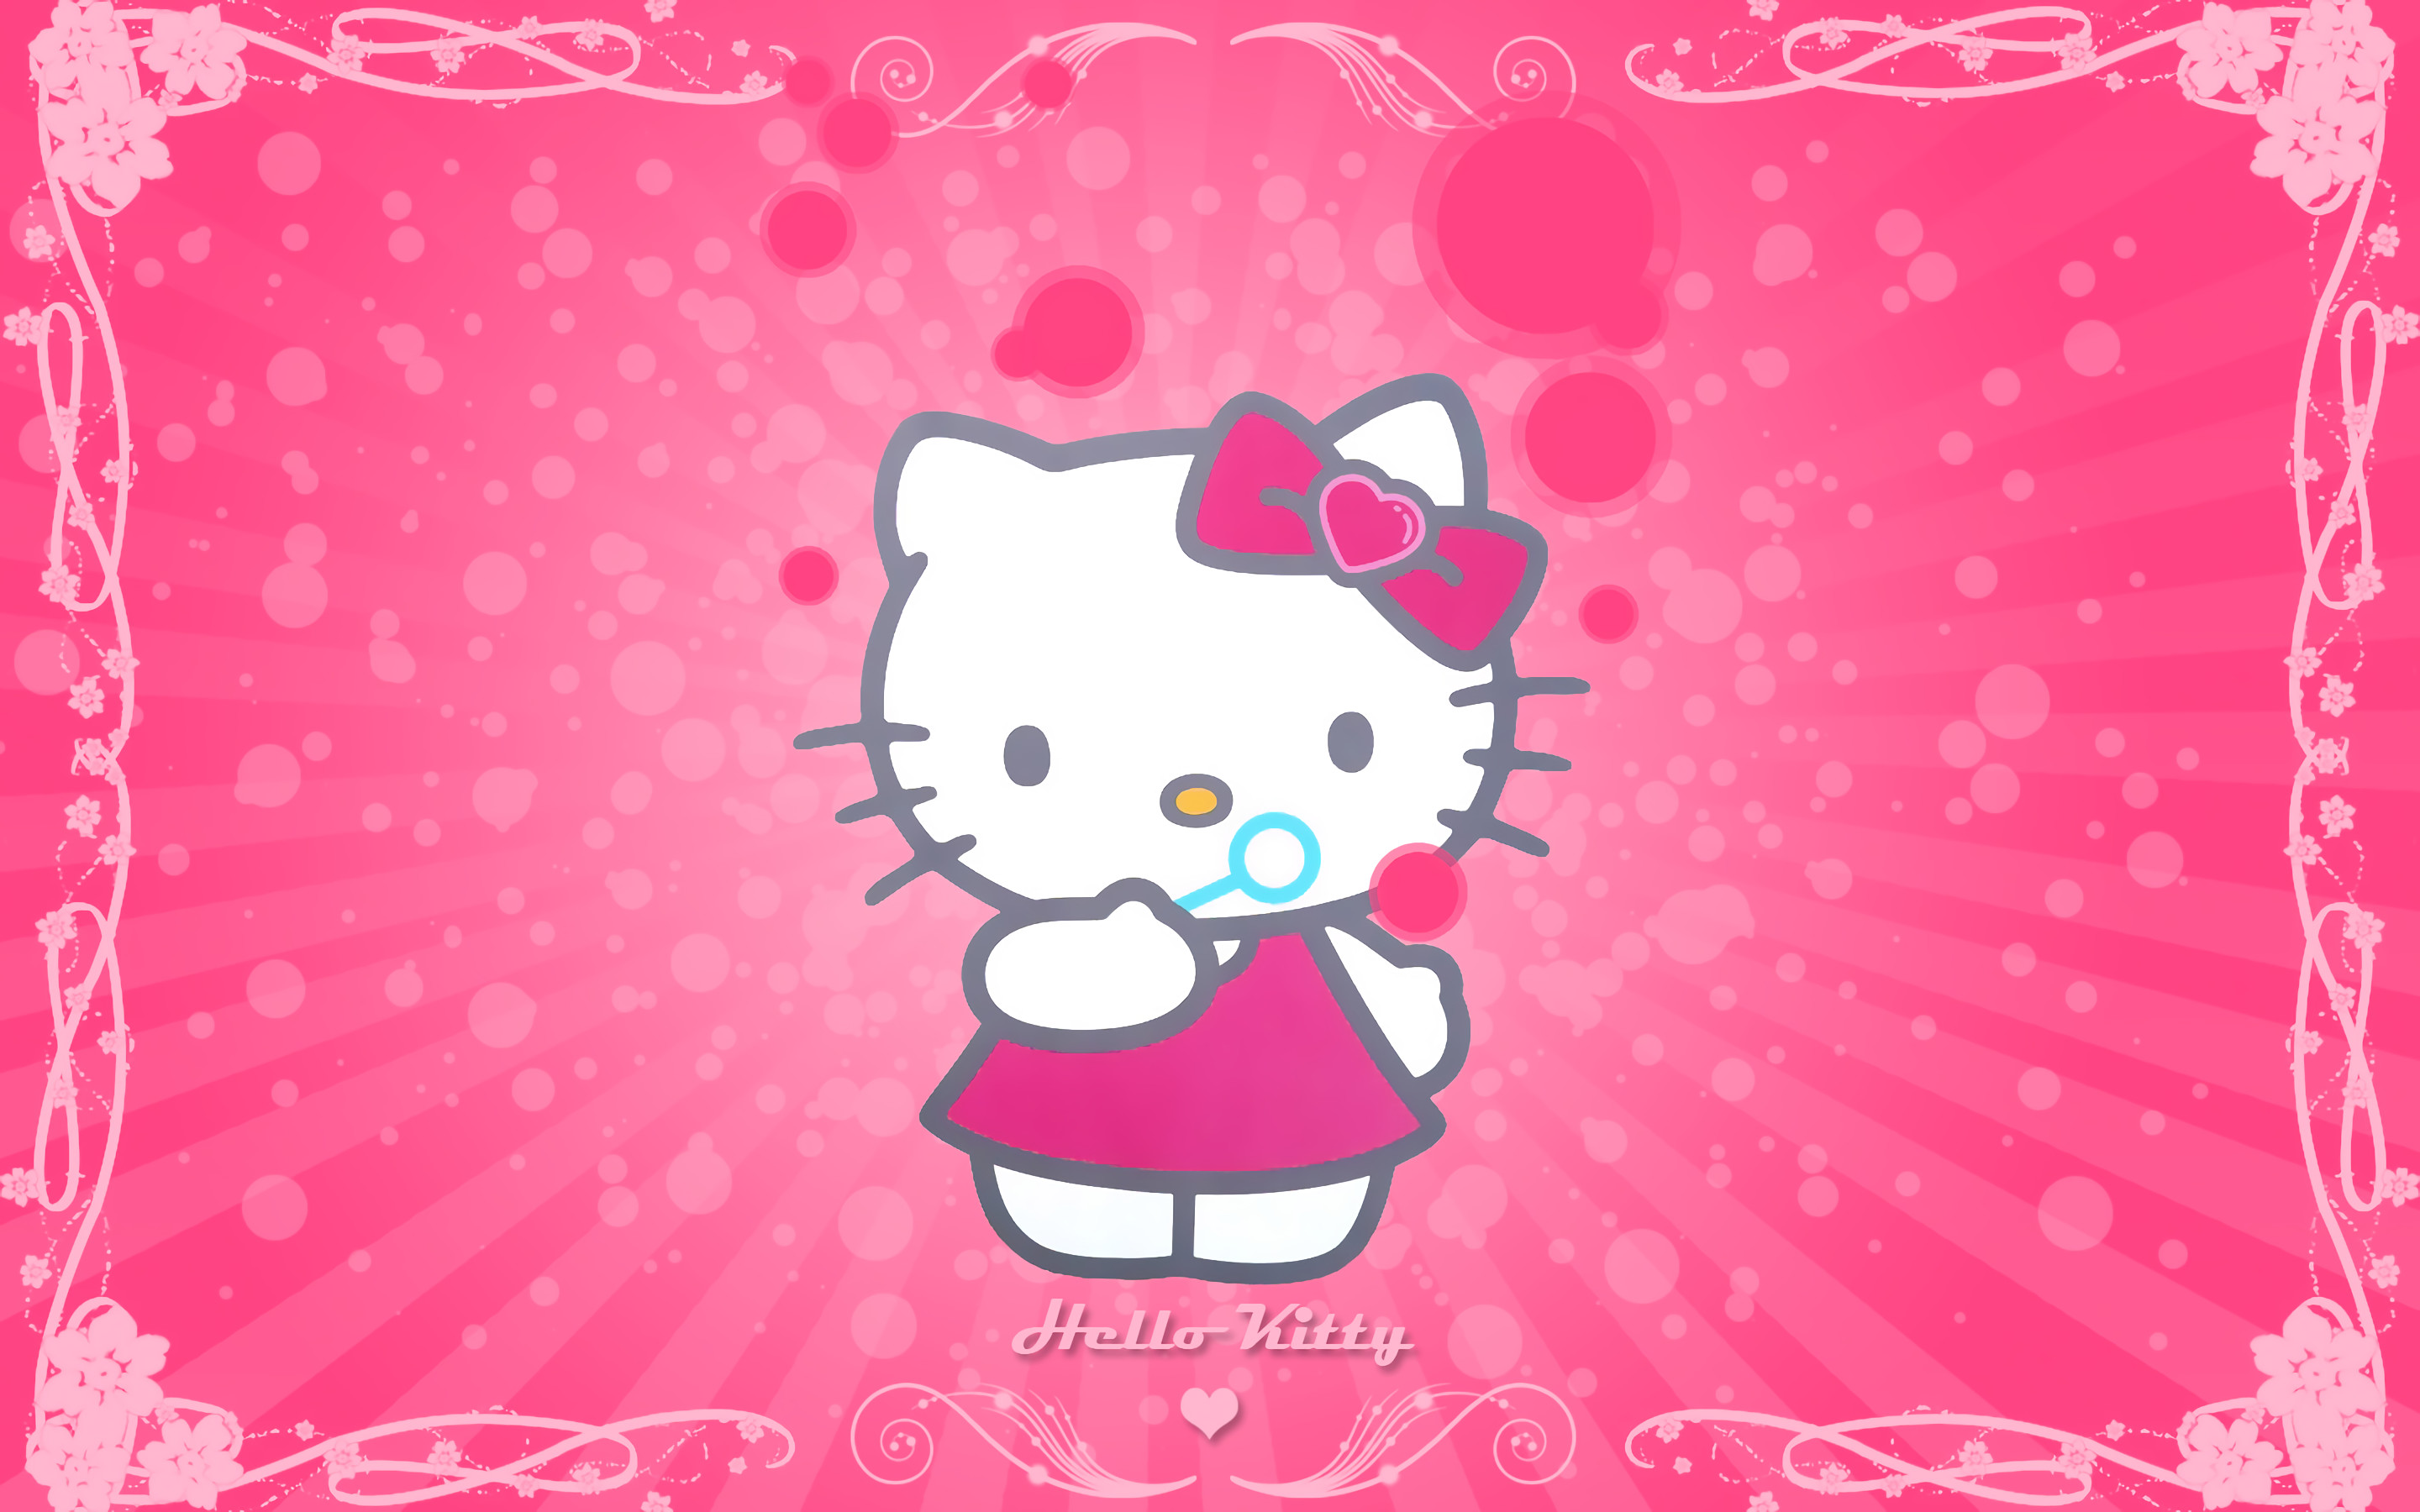 2880x1800 HD Wallpaper | Background Image ID:70264.  Anime Hello Kitty